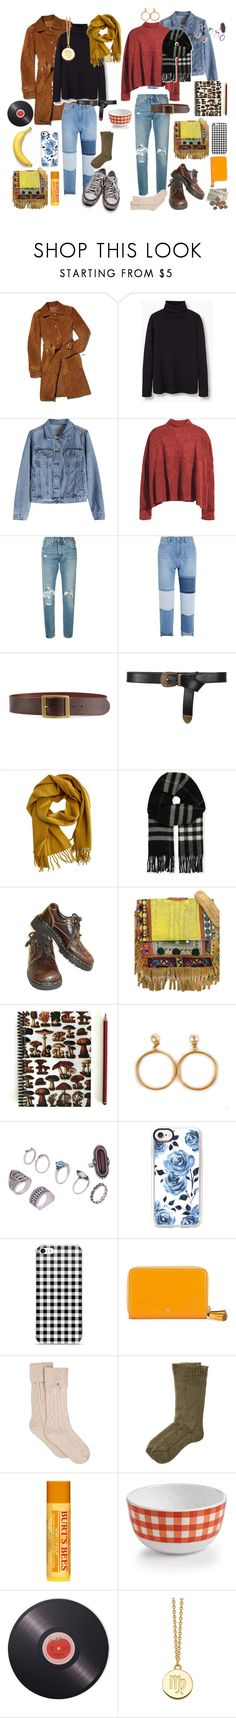 """""""out and about"""" by sydneybrunette on Polyvore featuring MANGO, H&M, Levi's, Steve J & Yoni P, Frame, Alberta Ferretti, Hermès, Burberry, Dr. Martens and Vintage Addiction"""